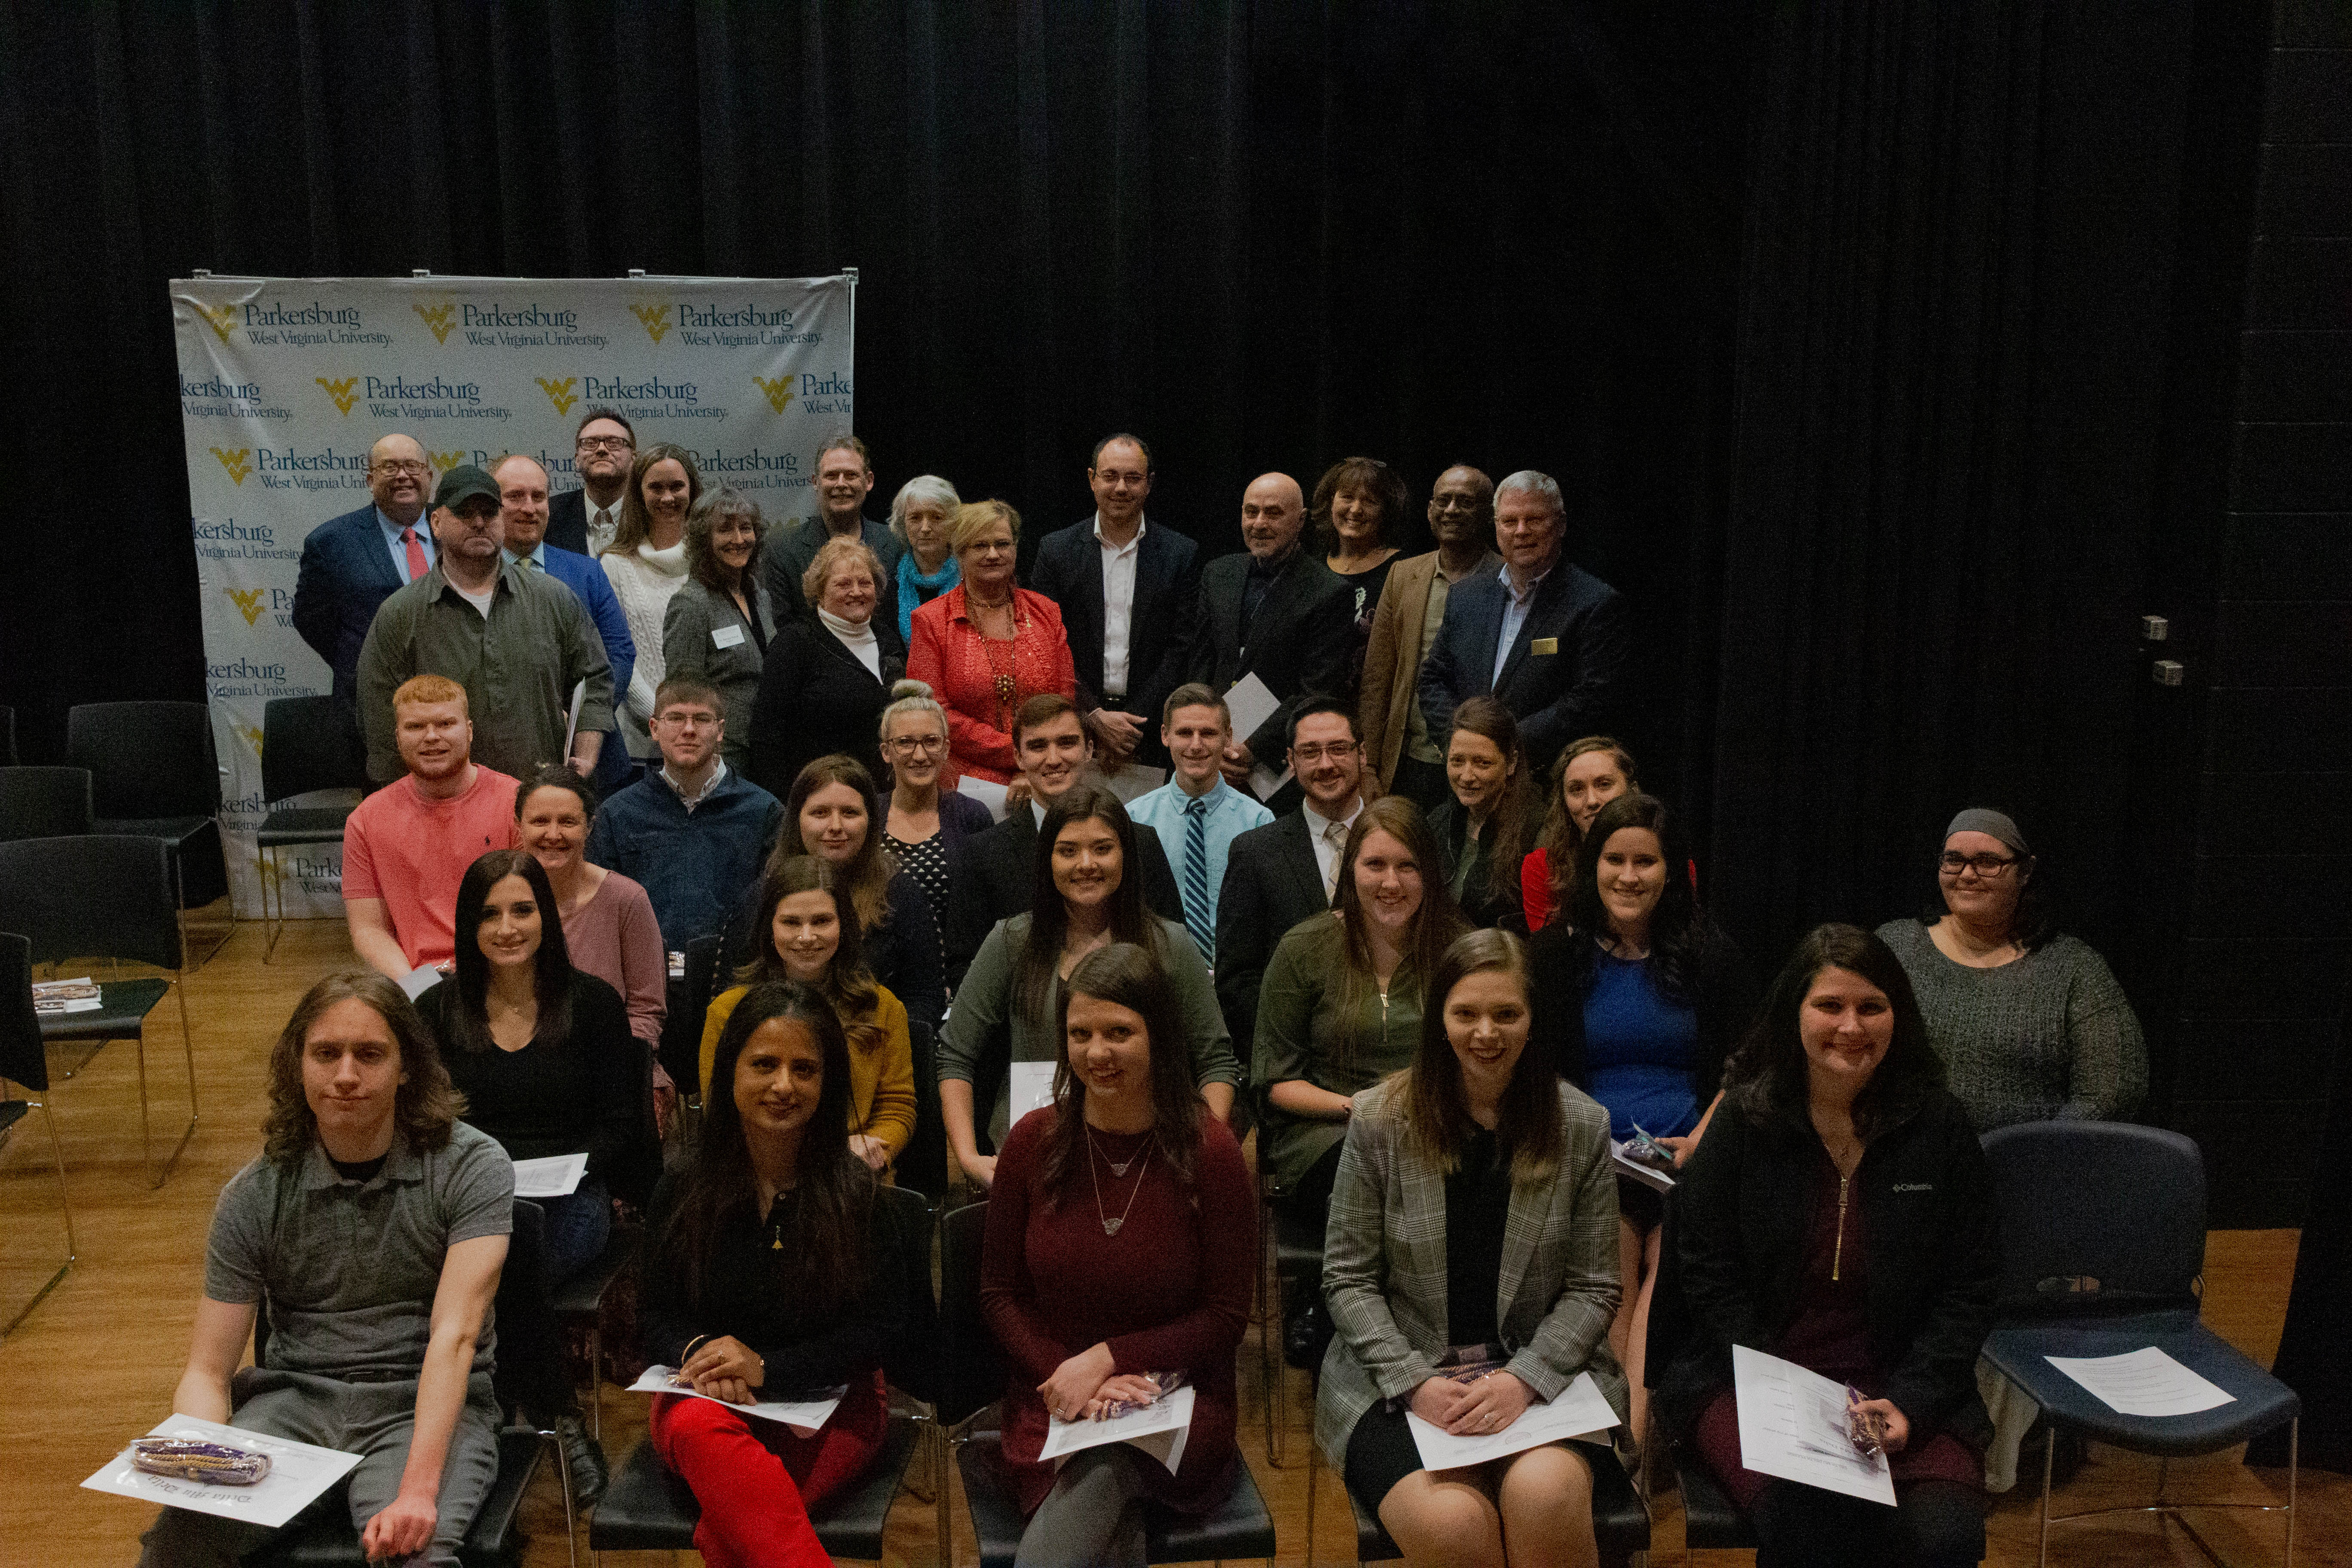 WVU Parkersburg inducts founding members of Delta Mu Delta honor society chapter